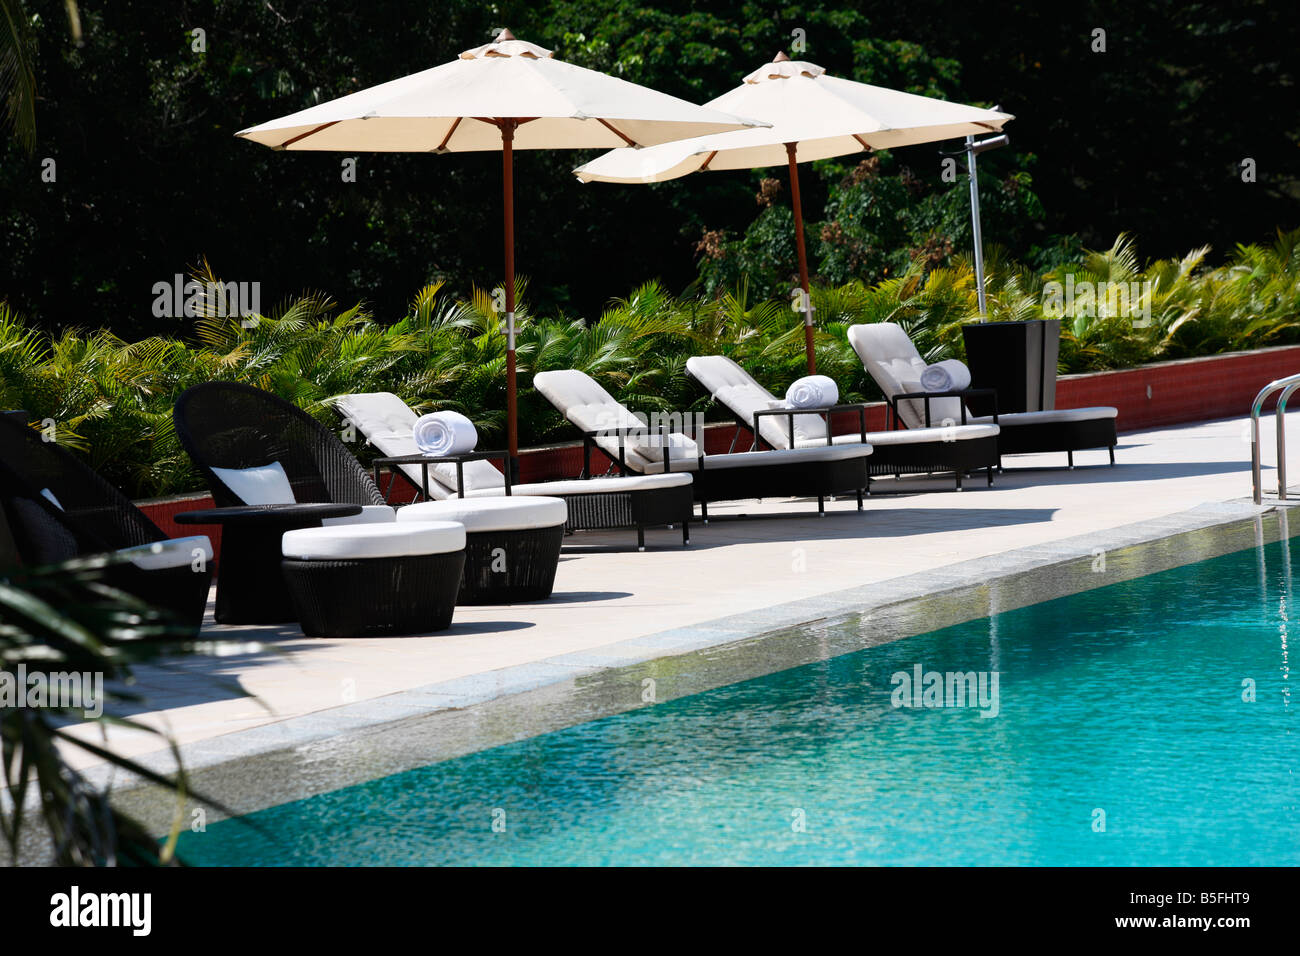 Pool Deck Chairs Swimming Pool With Deck Chairs In A Five Star Hotel In